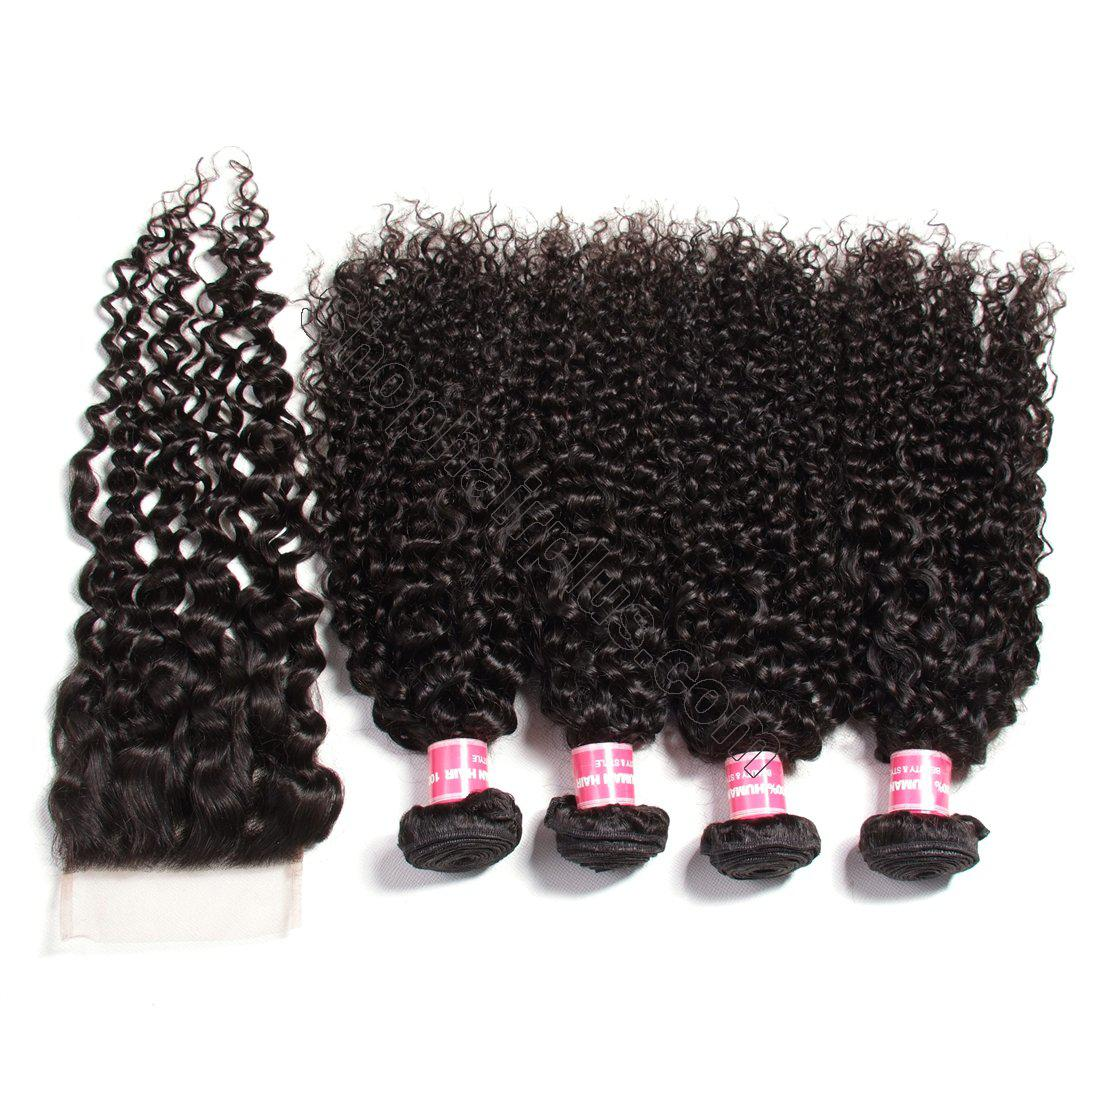 Indian Virgin Curly Hair 4 Bundles with 4*4 Lace Closure-Klaiyi Hair 5